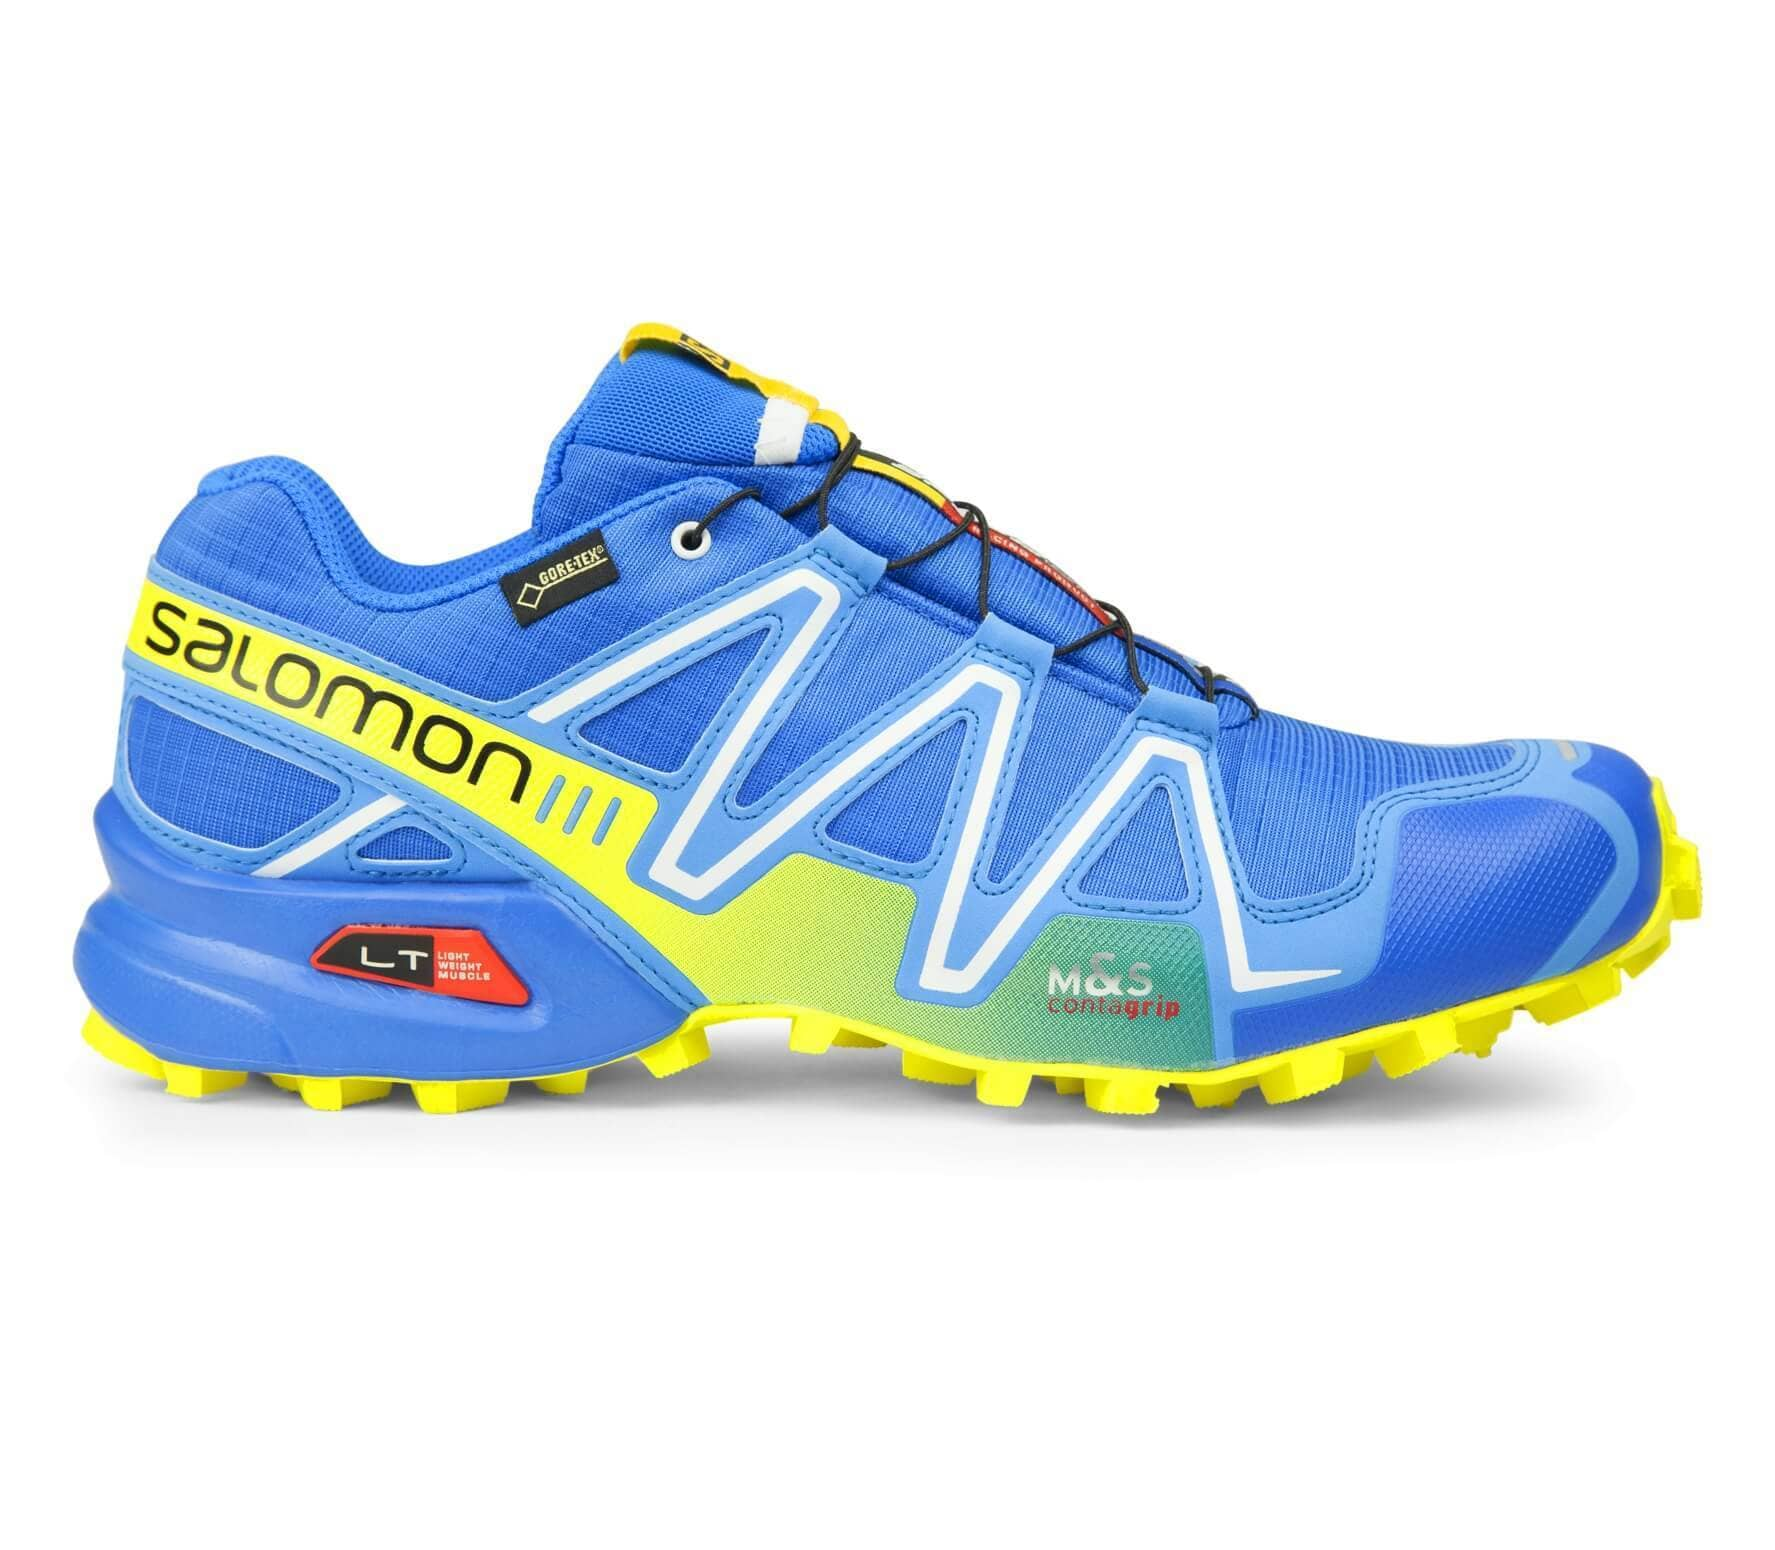 hot sale online c5cbb f5980 Salomon - Speedcross 3 GTX men s running shoes (blue green)